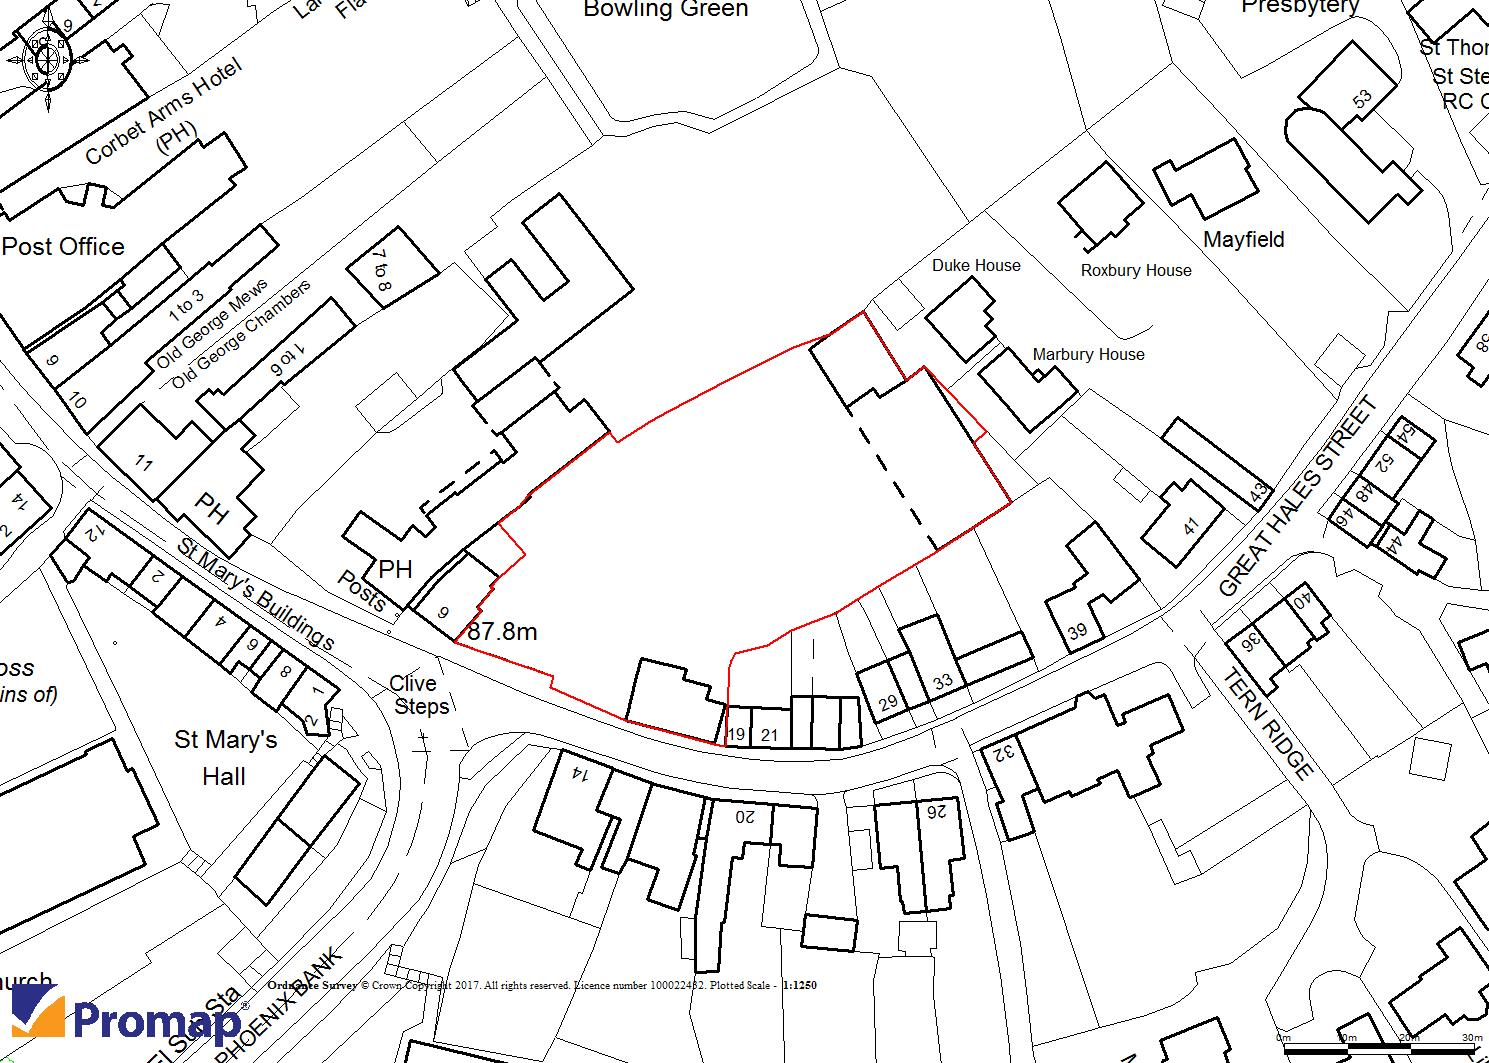 Floorplans For Land at Great Hales Street, Market Drayton, TF9 1JW